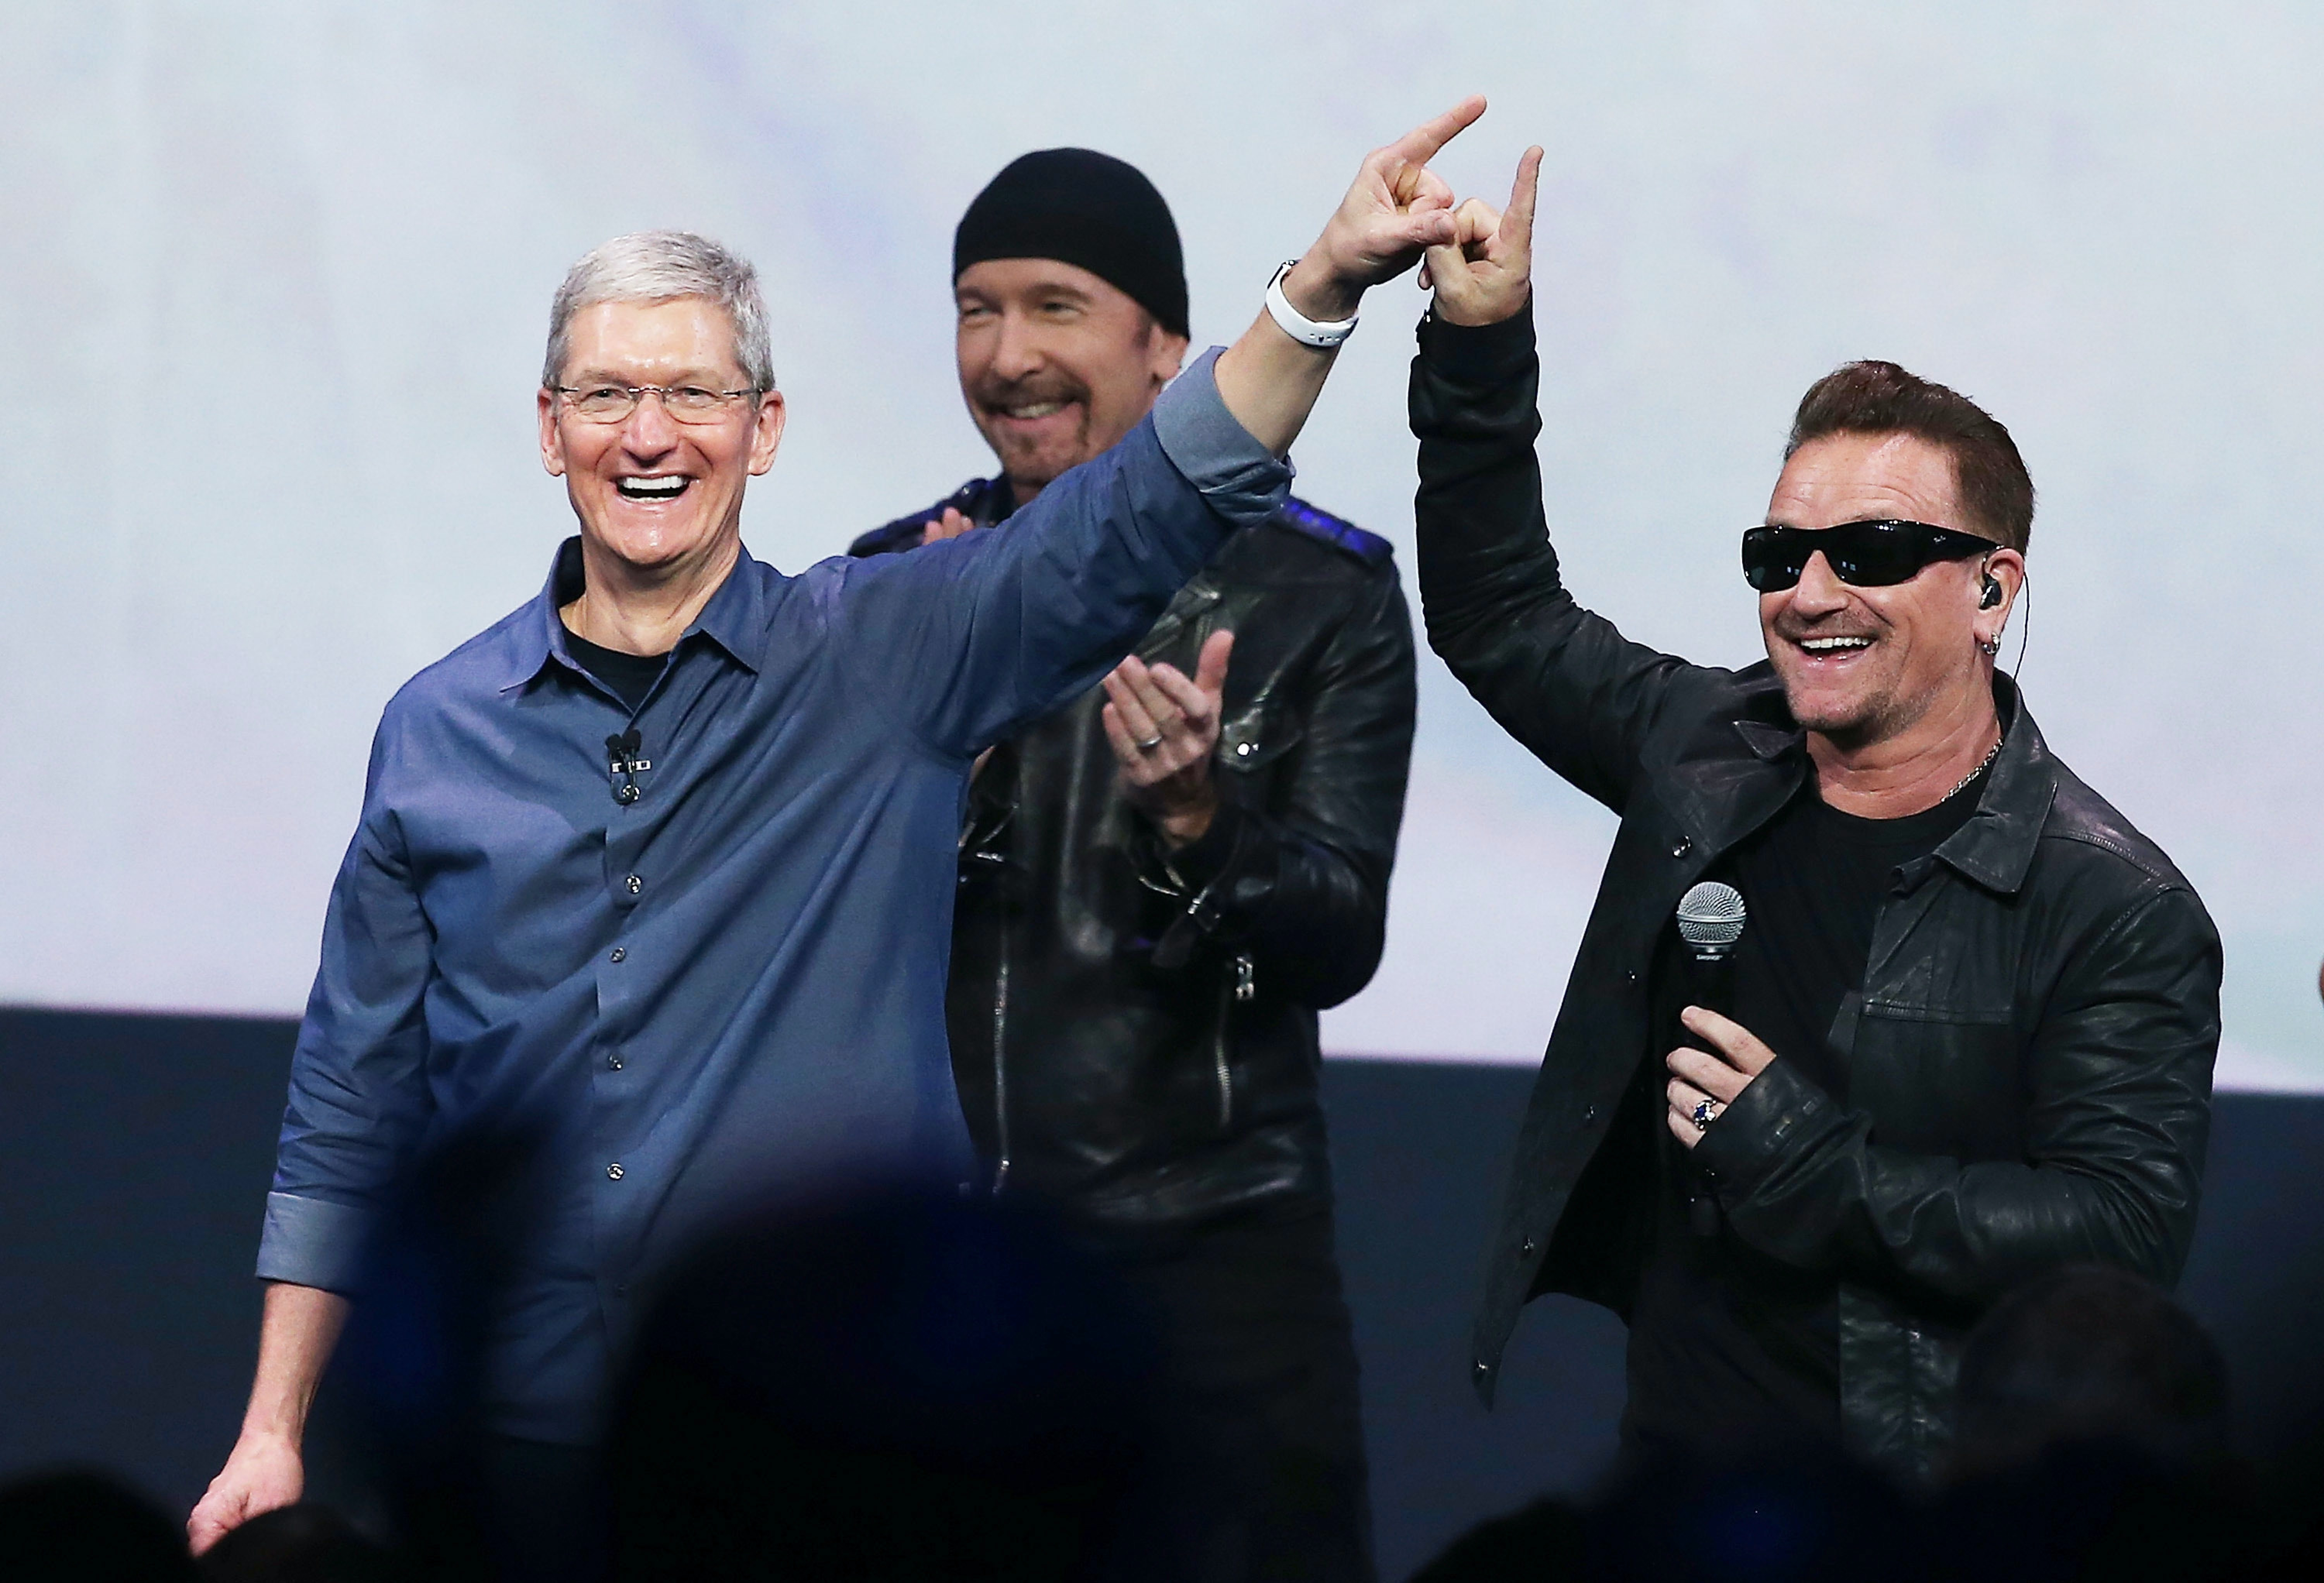 Tim Cook, seen here making human contact with Bono.